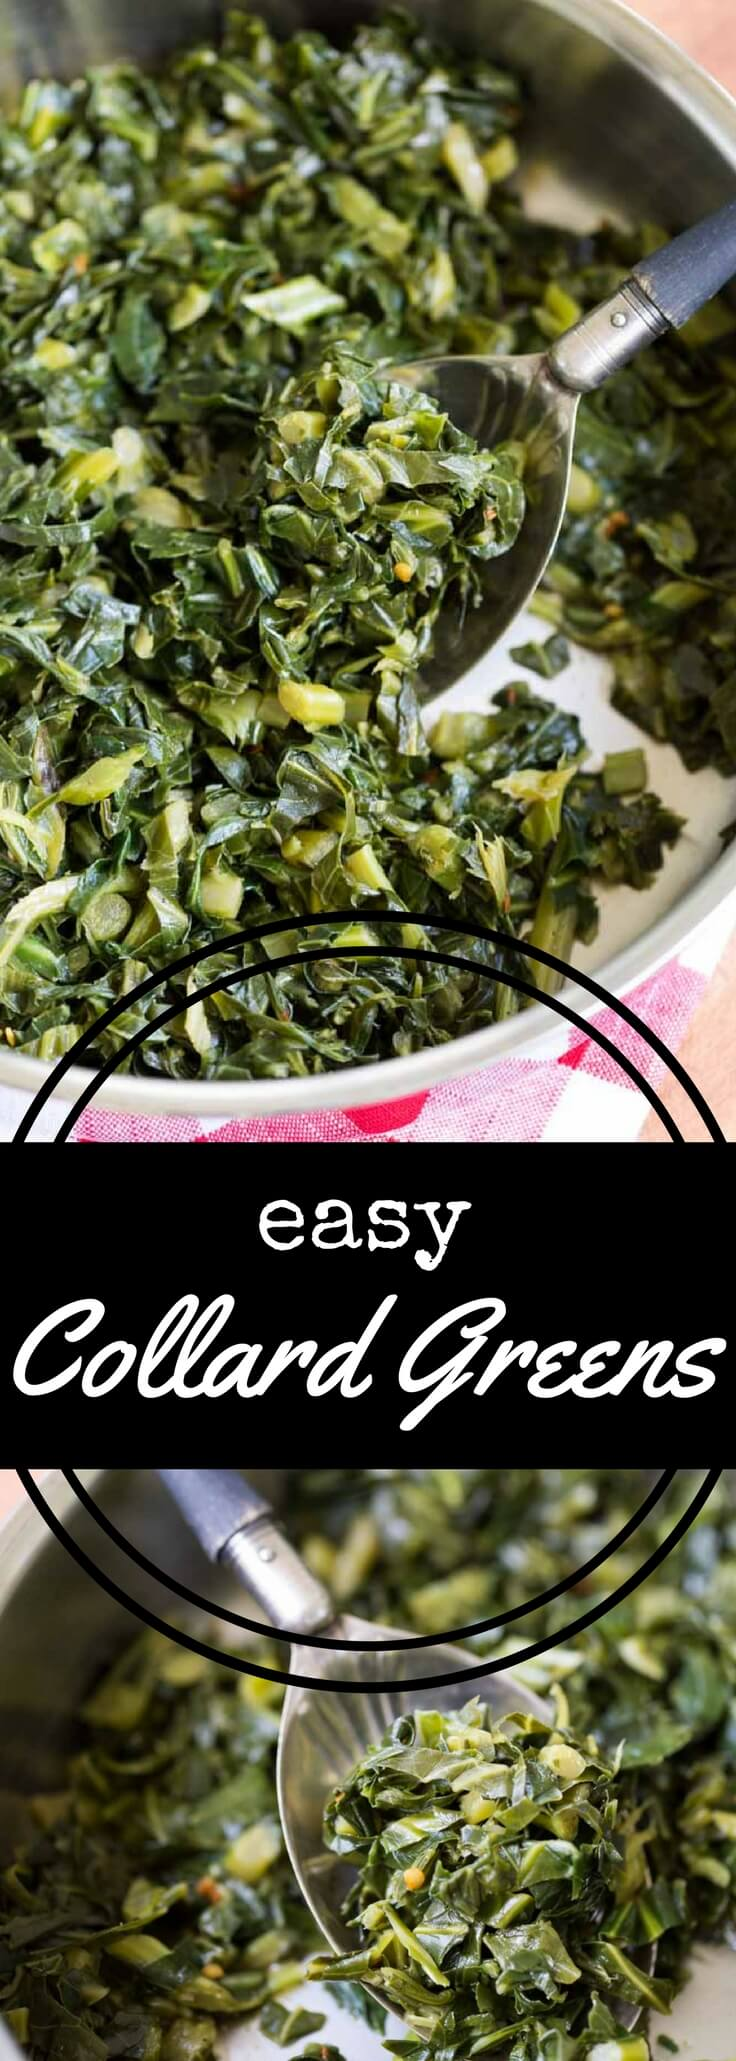 This easy collard greens recipe is simple to make, requiring only a small amount of fat along with chicken broth and a touch of seasoning.